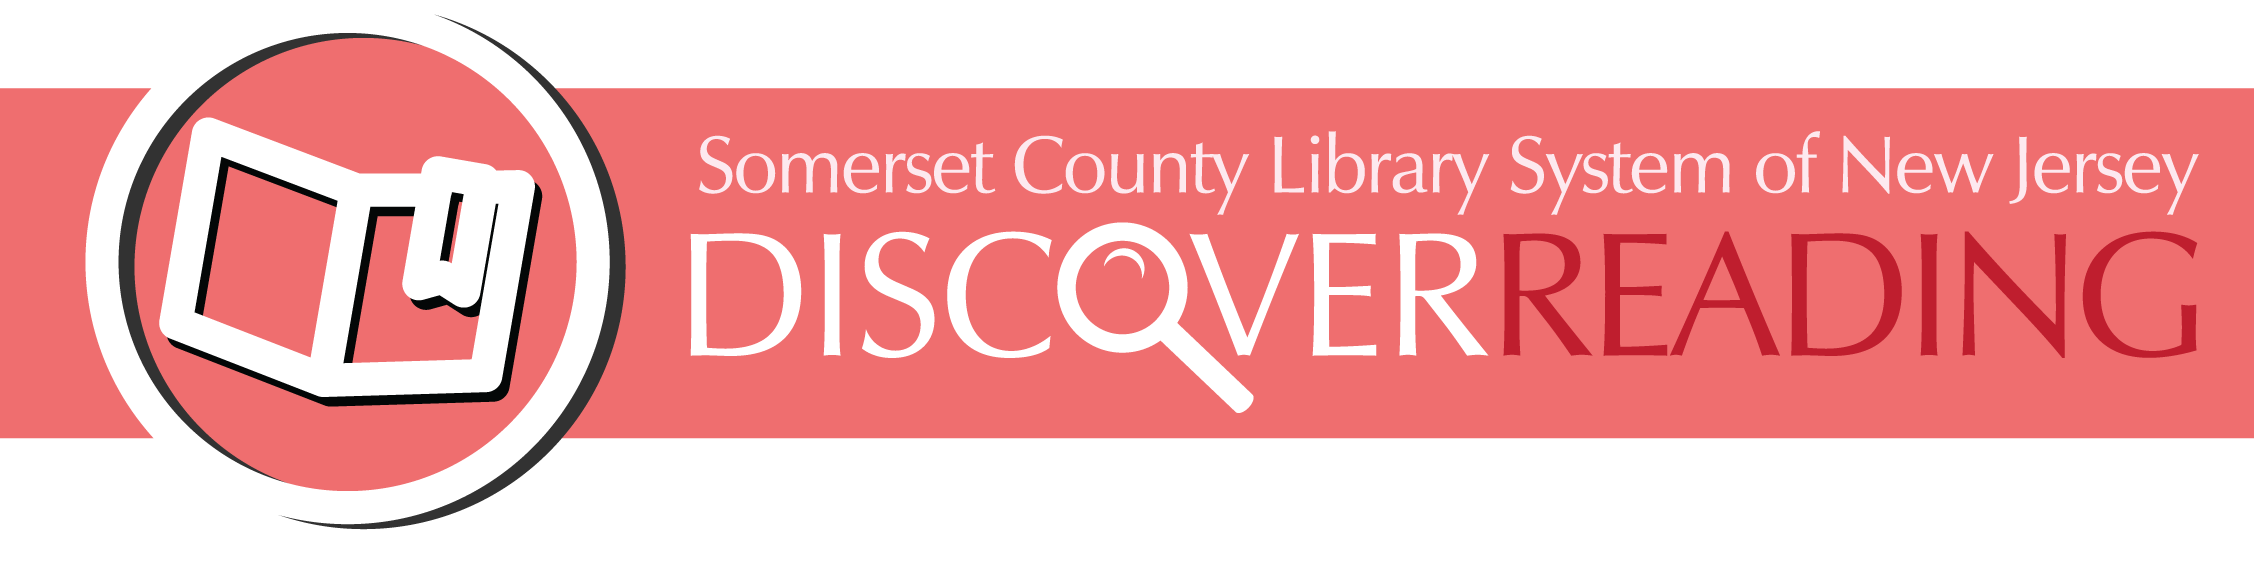 Discover Reading